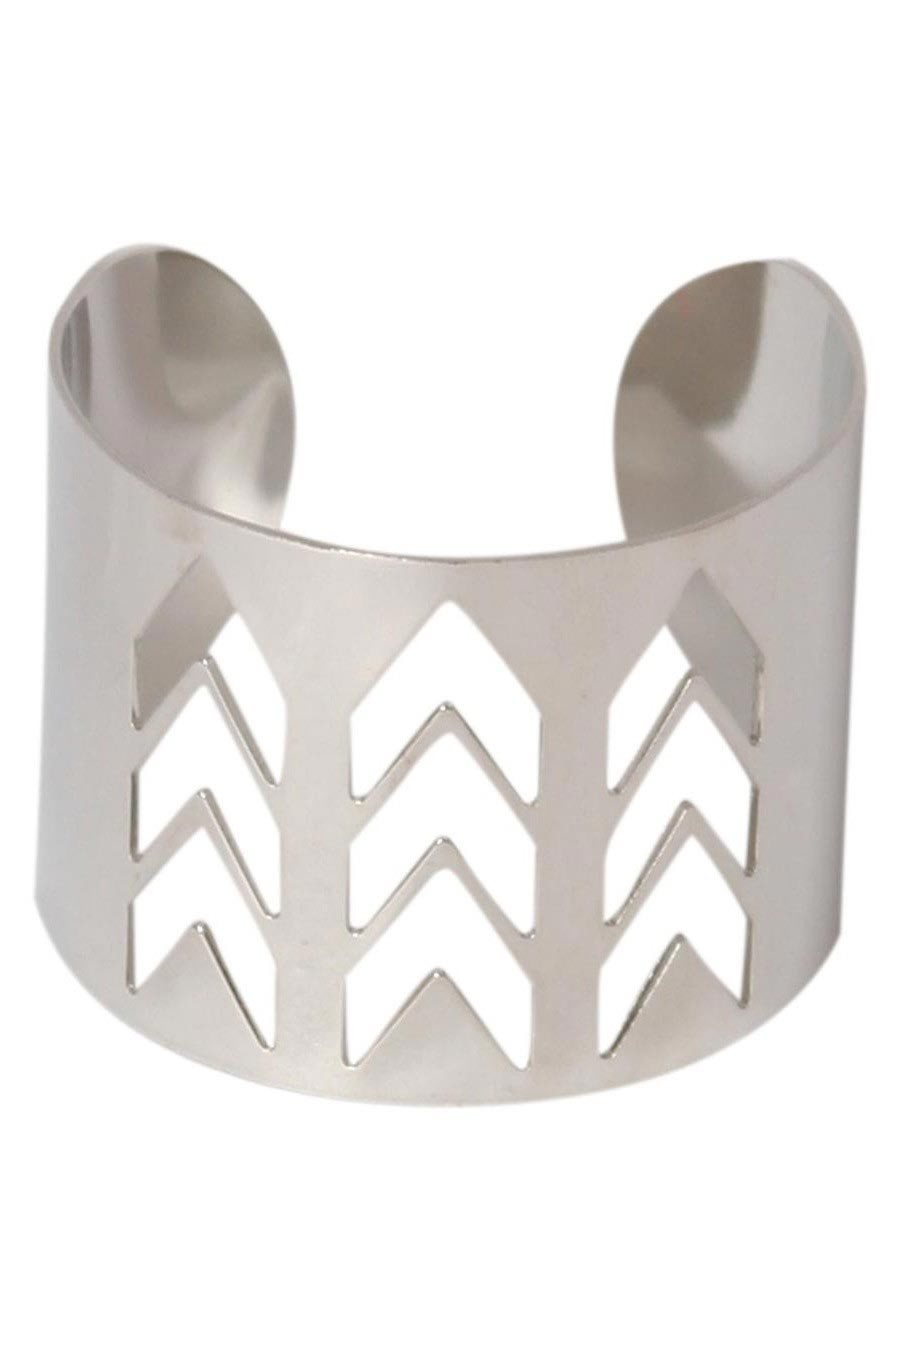 Malia Chevron Cut Out Cuff Bracelet in Silver FRONT